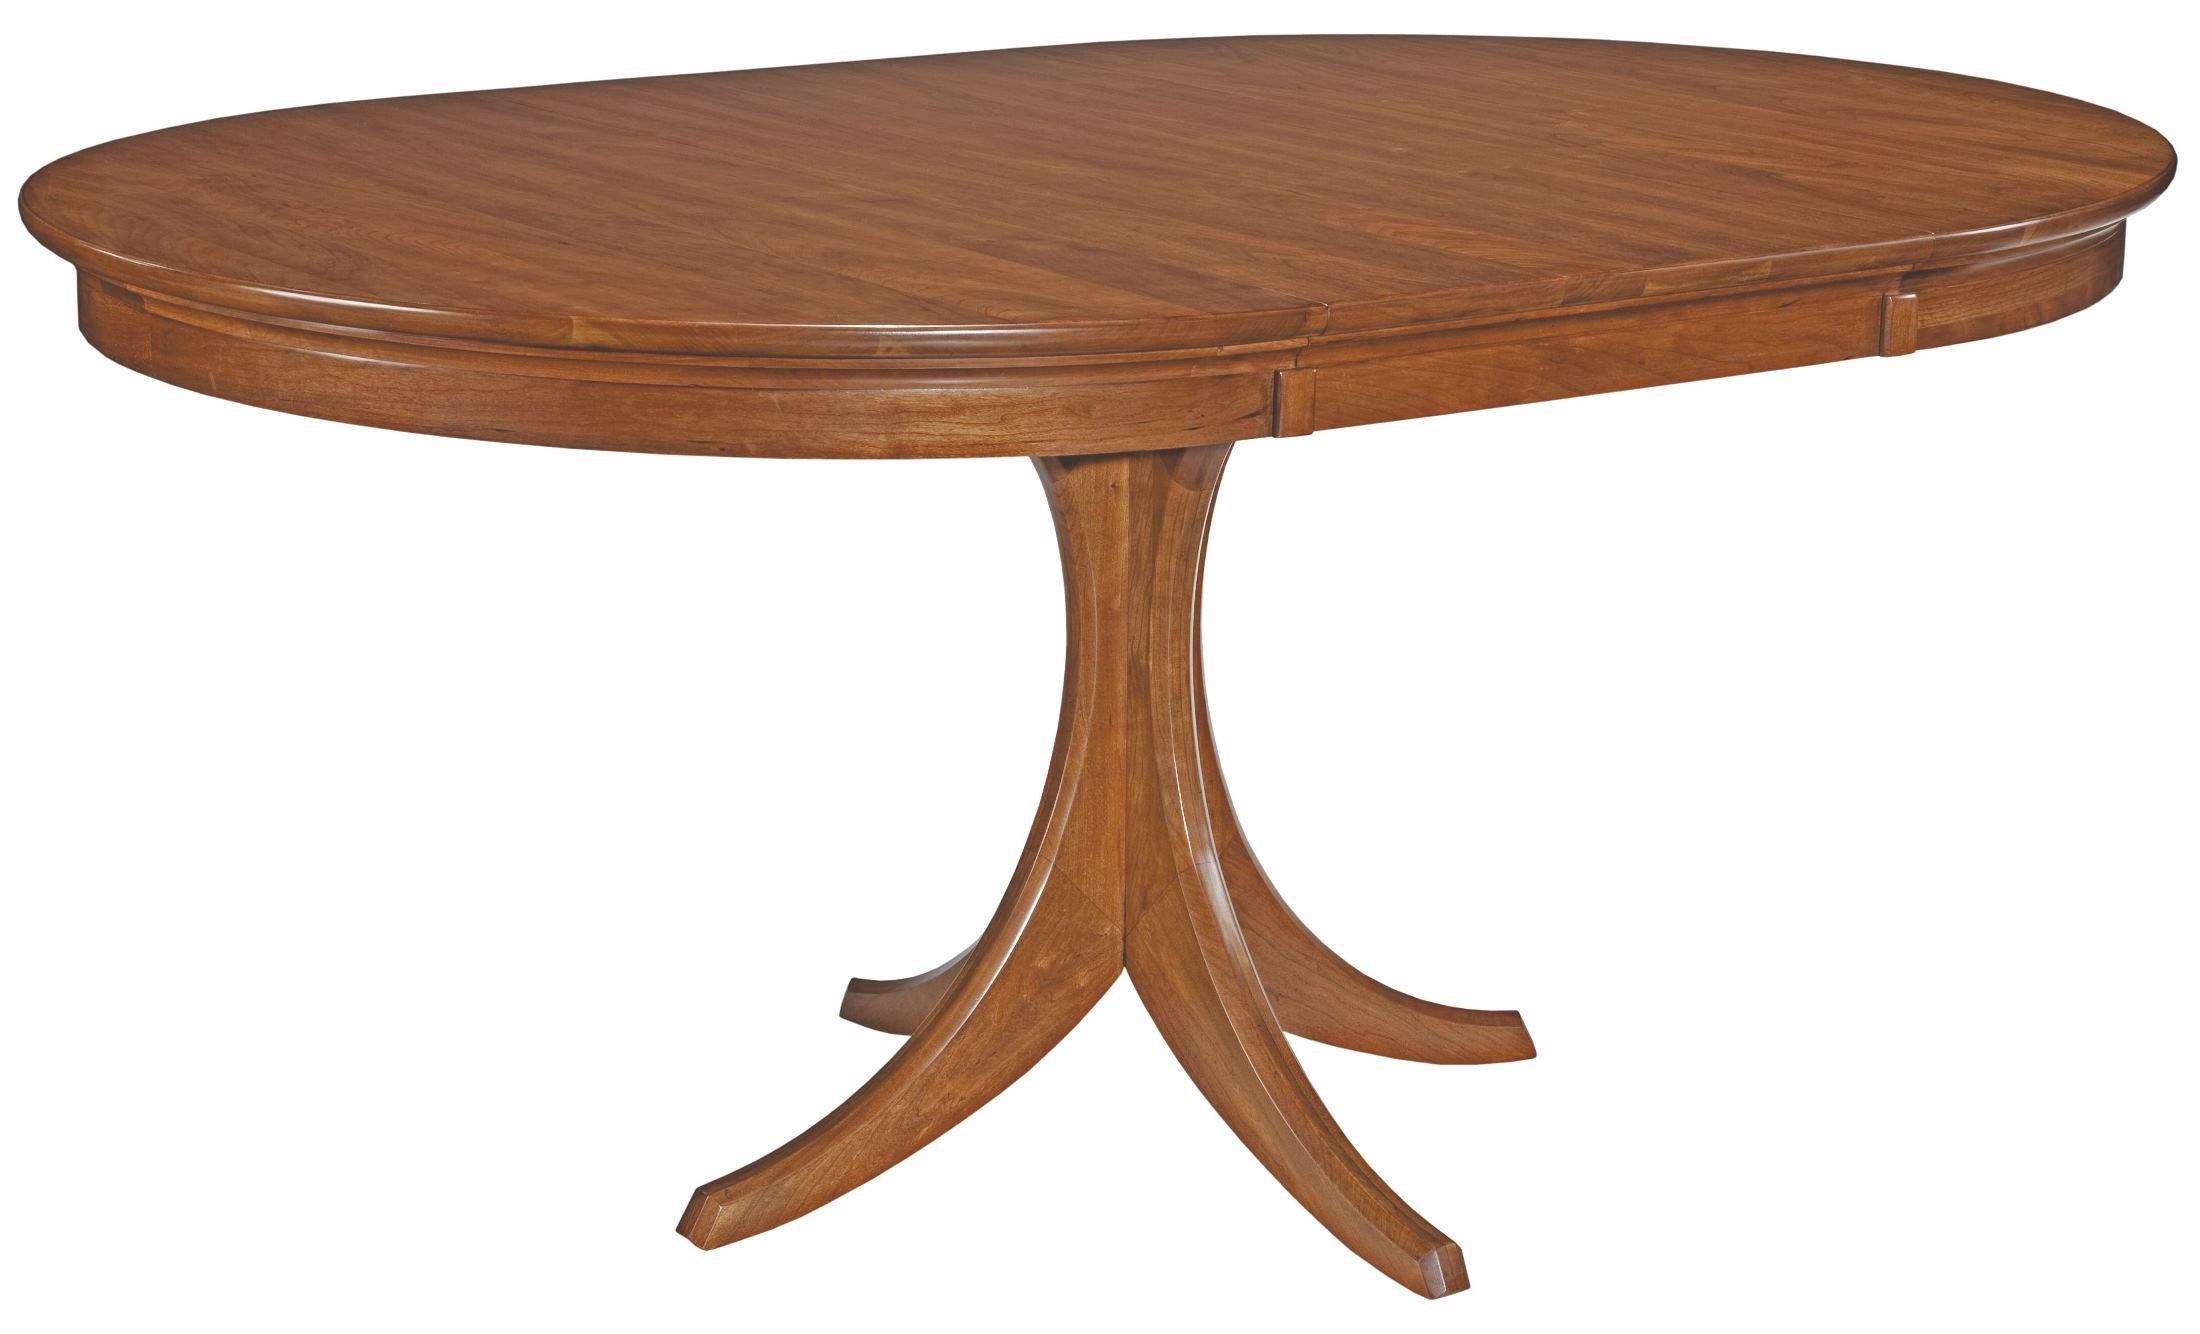 Round Cherry Dining Table : 63 054silo from hwiki.us size 2200 x 1334 jpeg 214kB